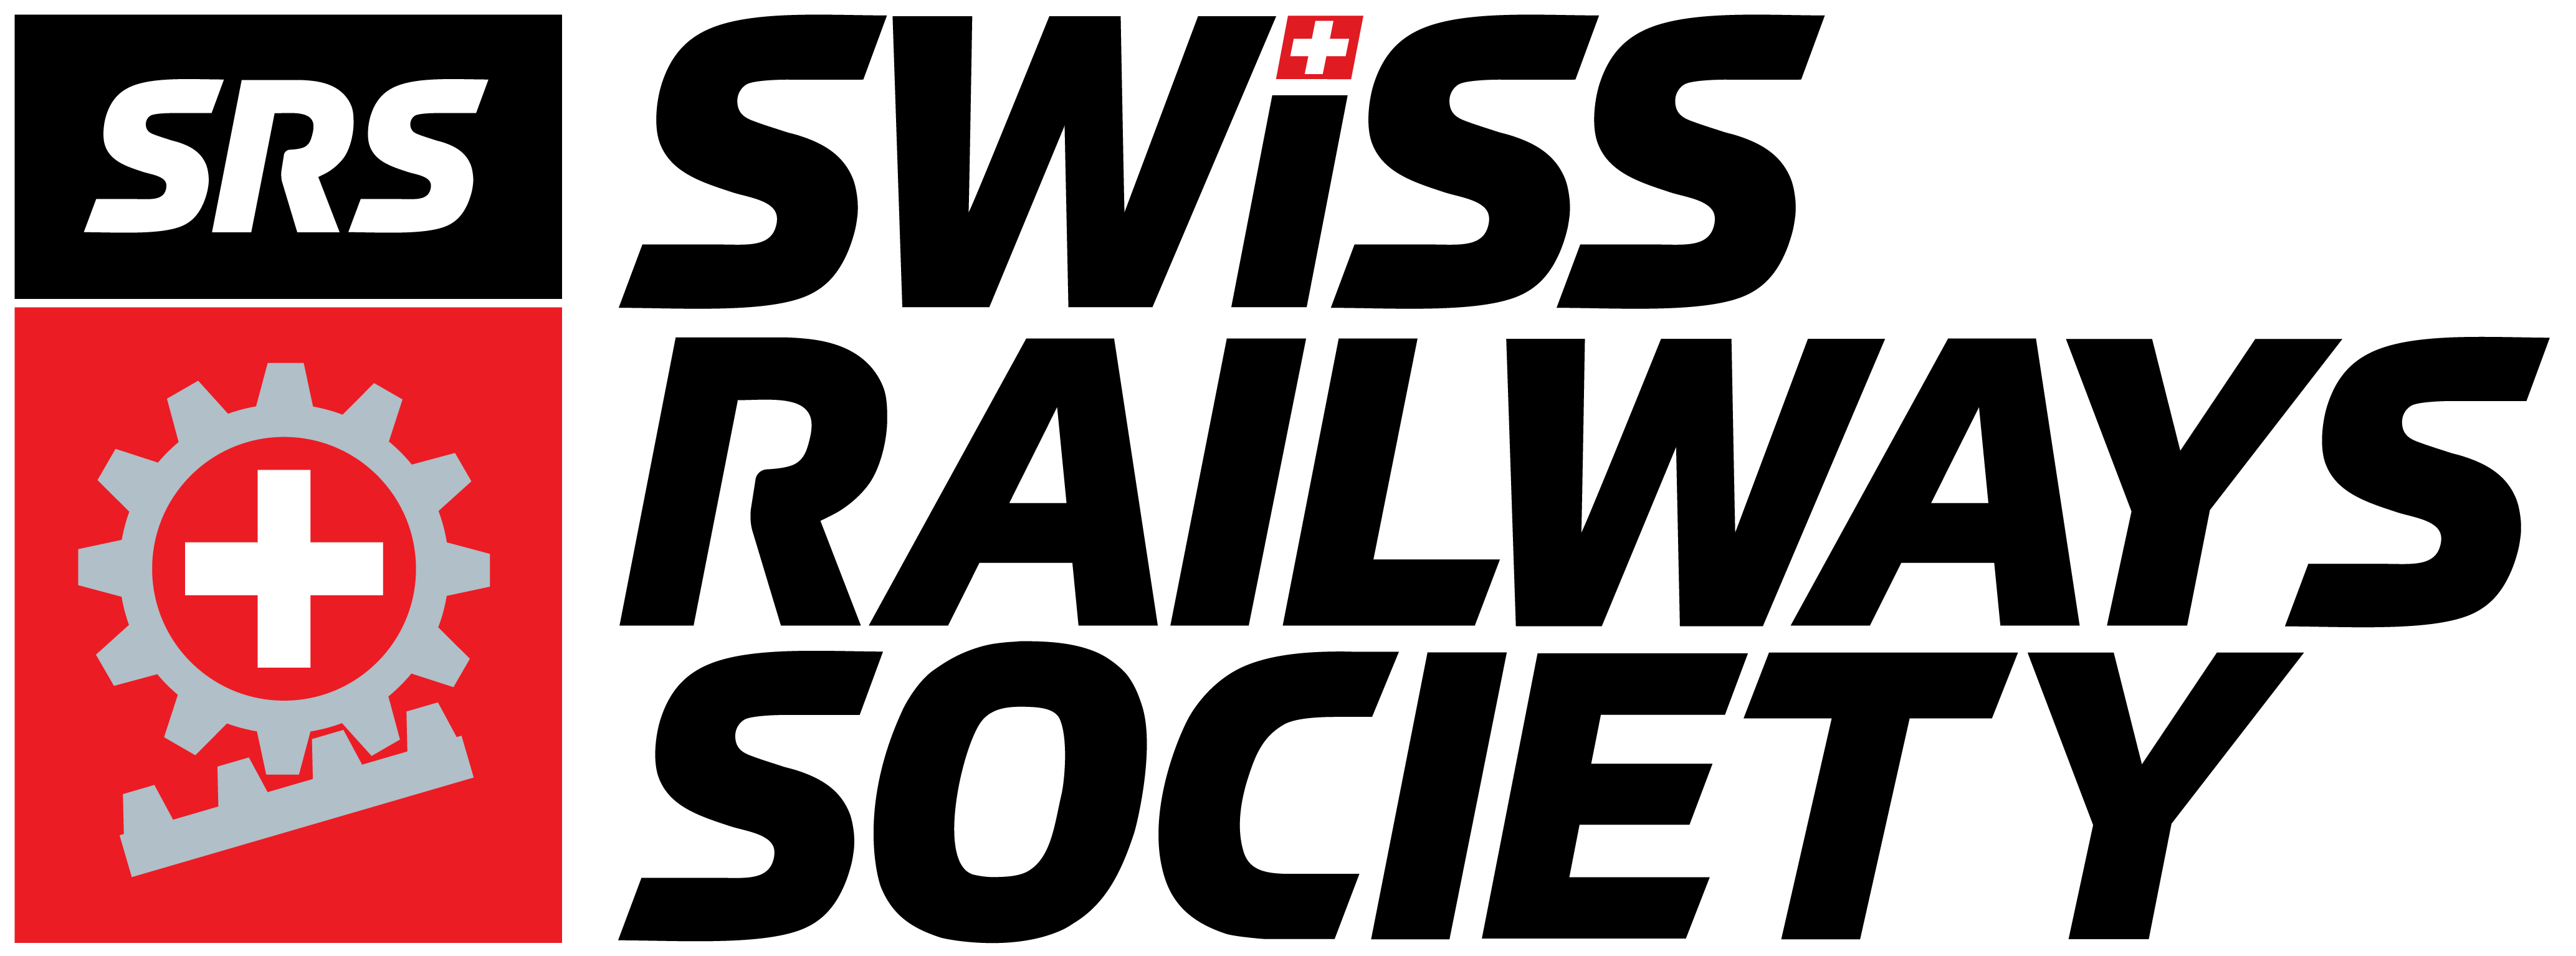 Swiss Railways Society